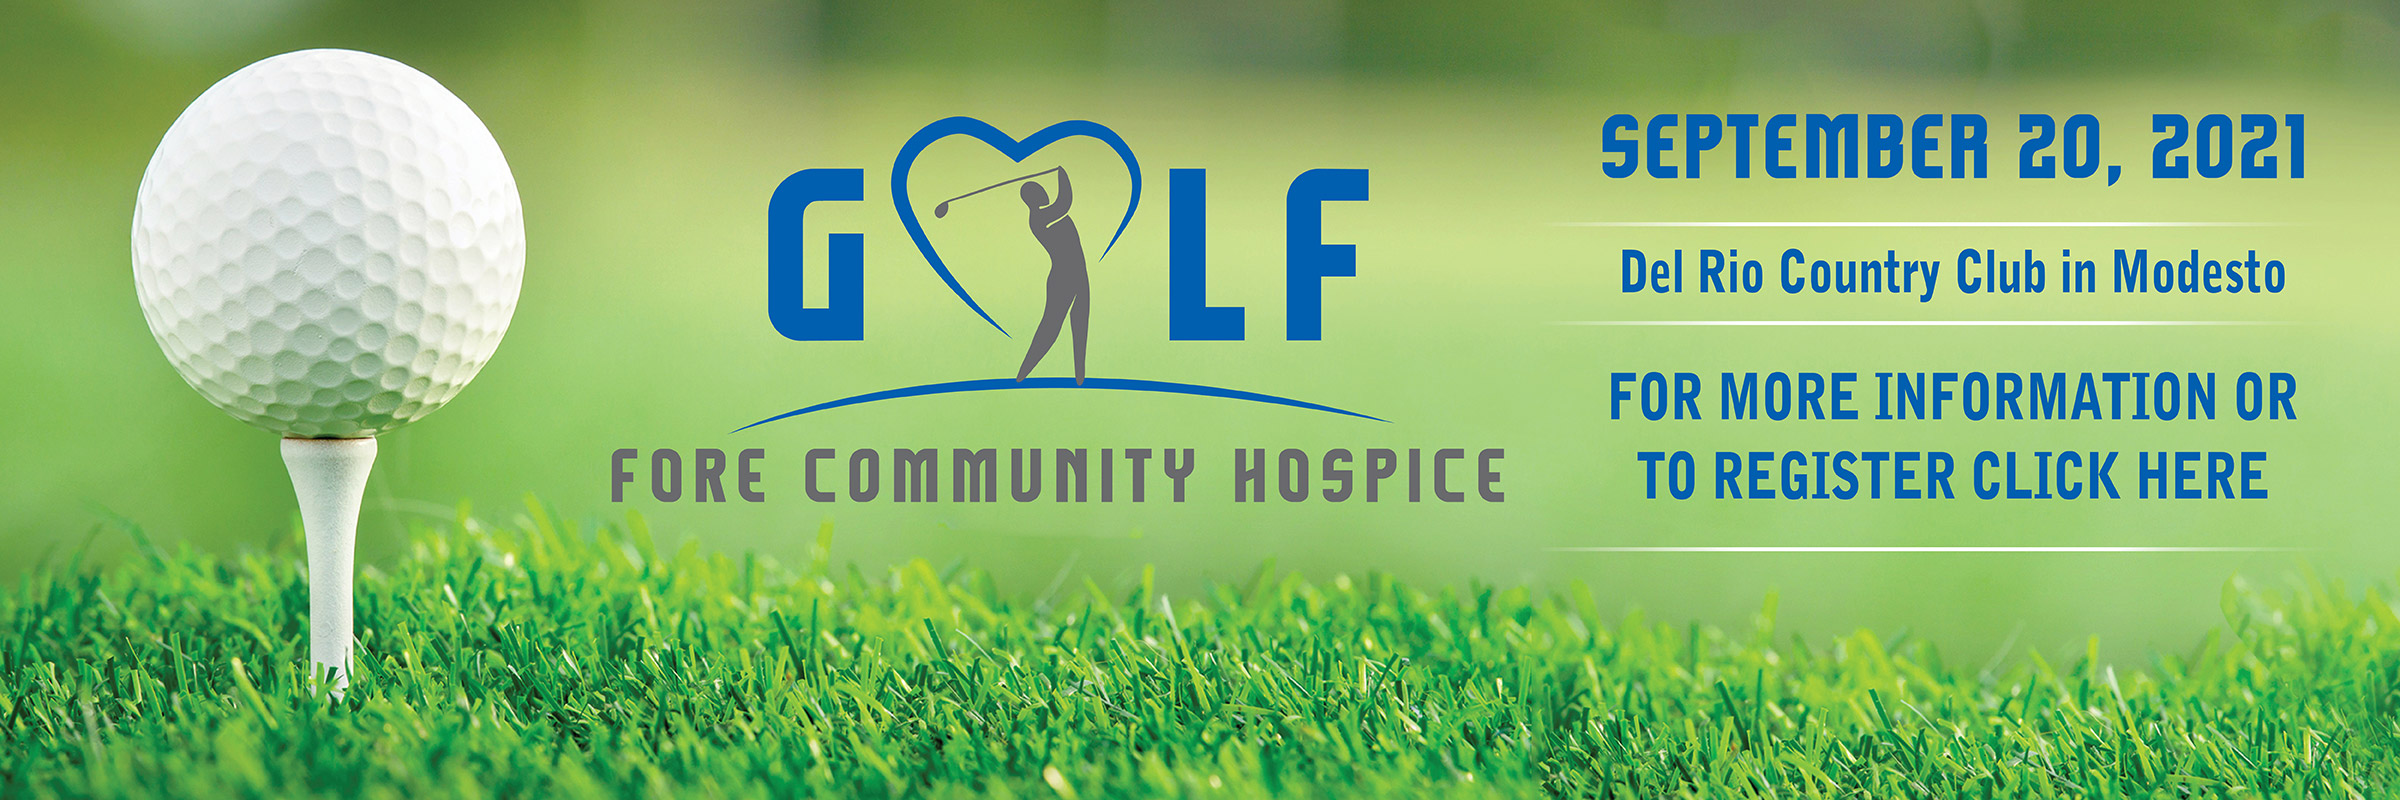 Golf-Fore-Hospice-Carousel